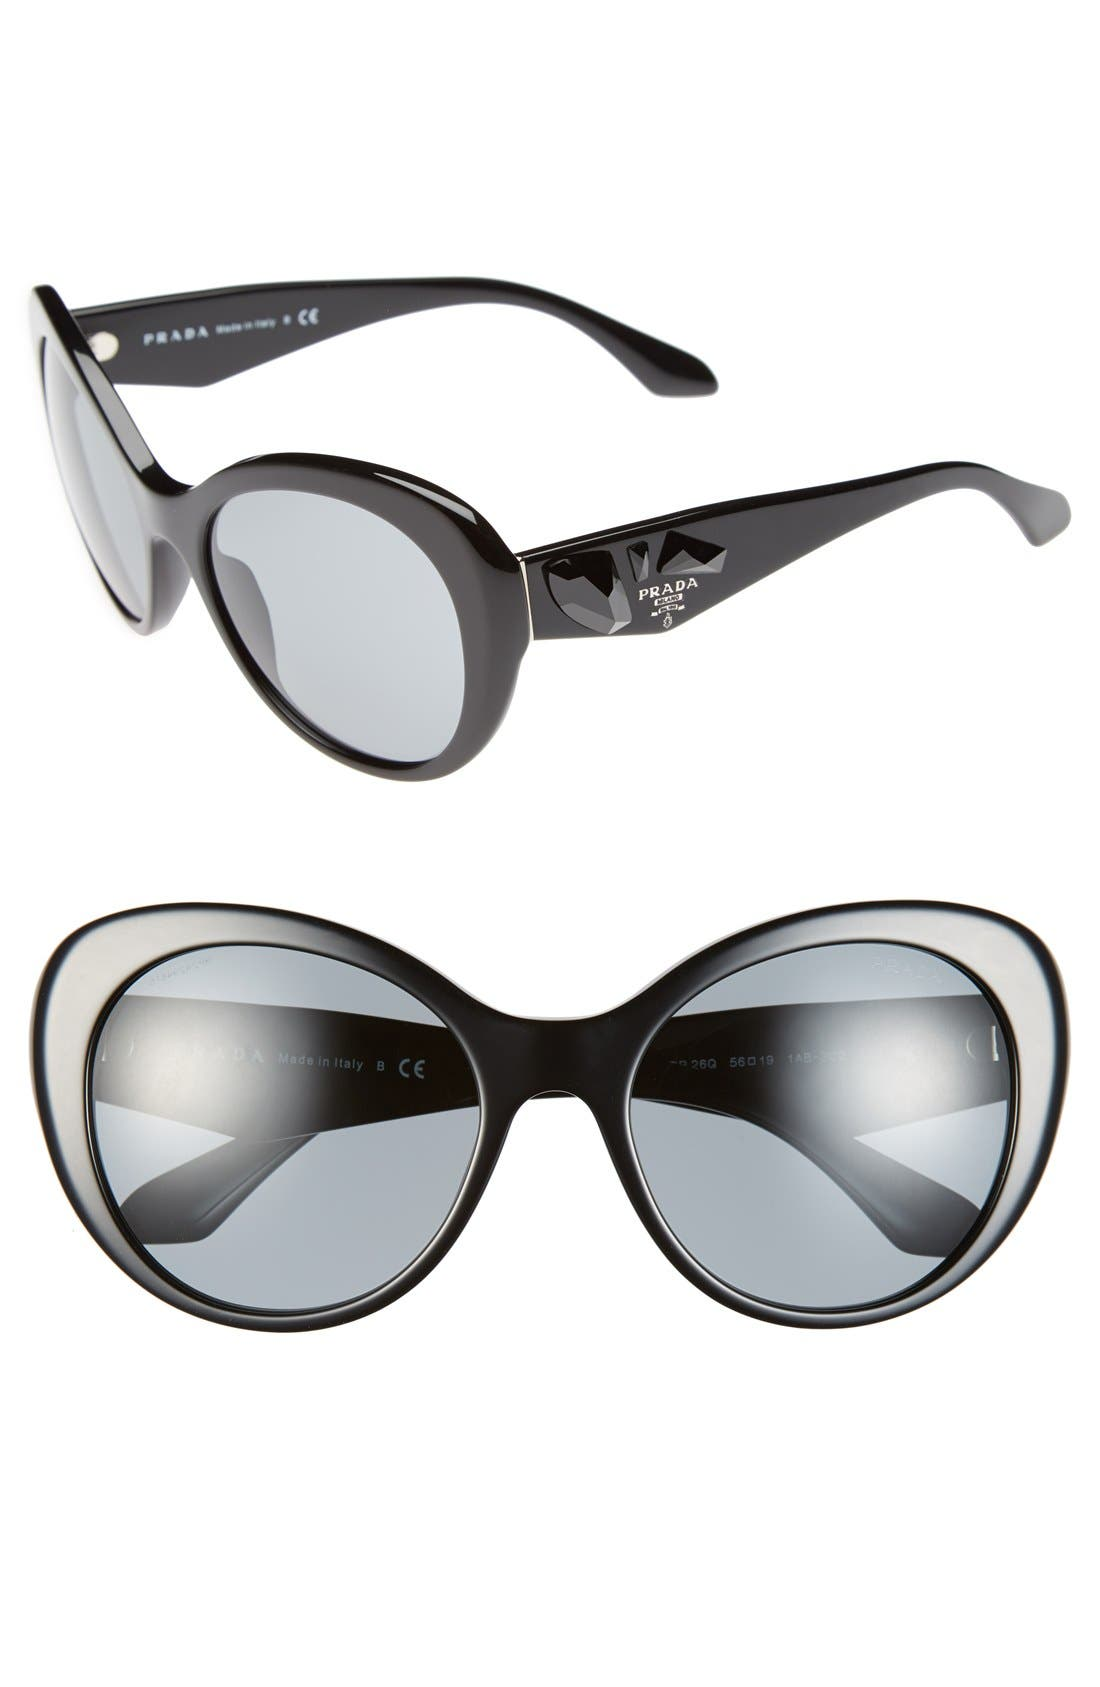 Main Image - Prada 'Voice' 56mm Sunglasses